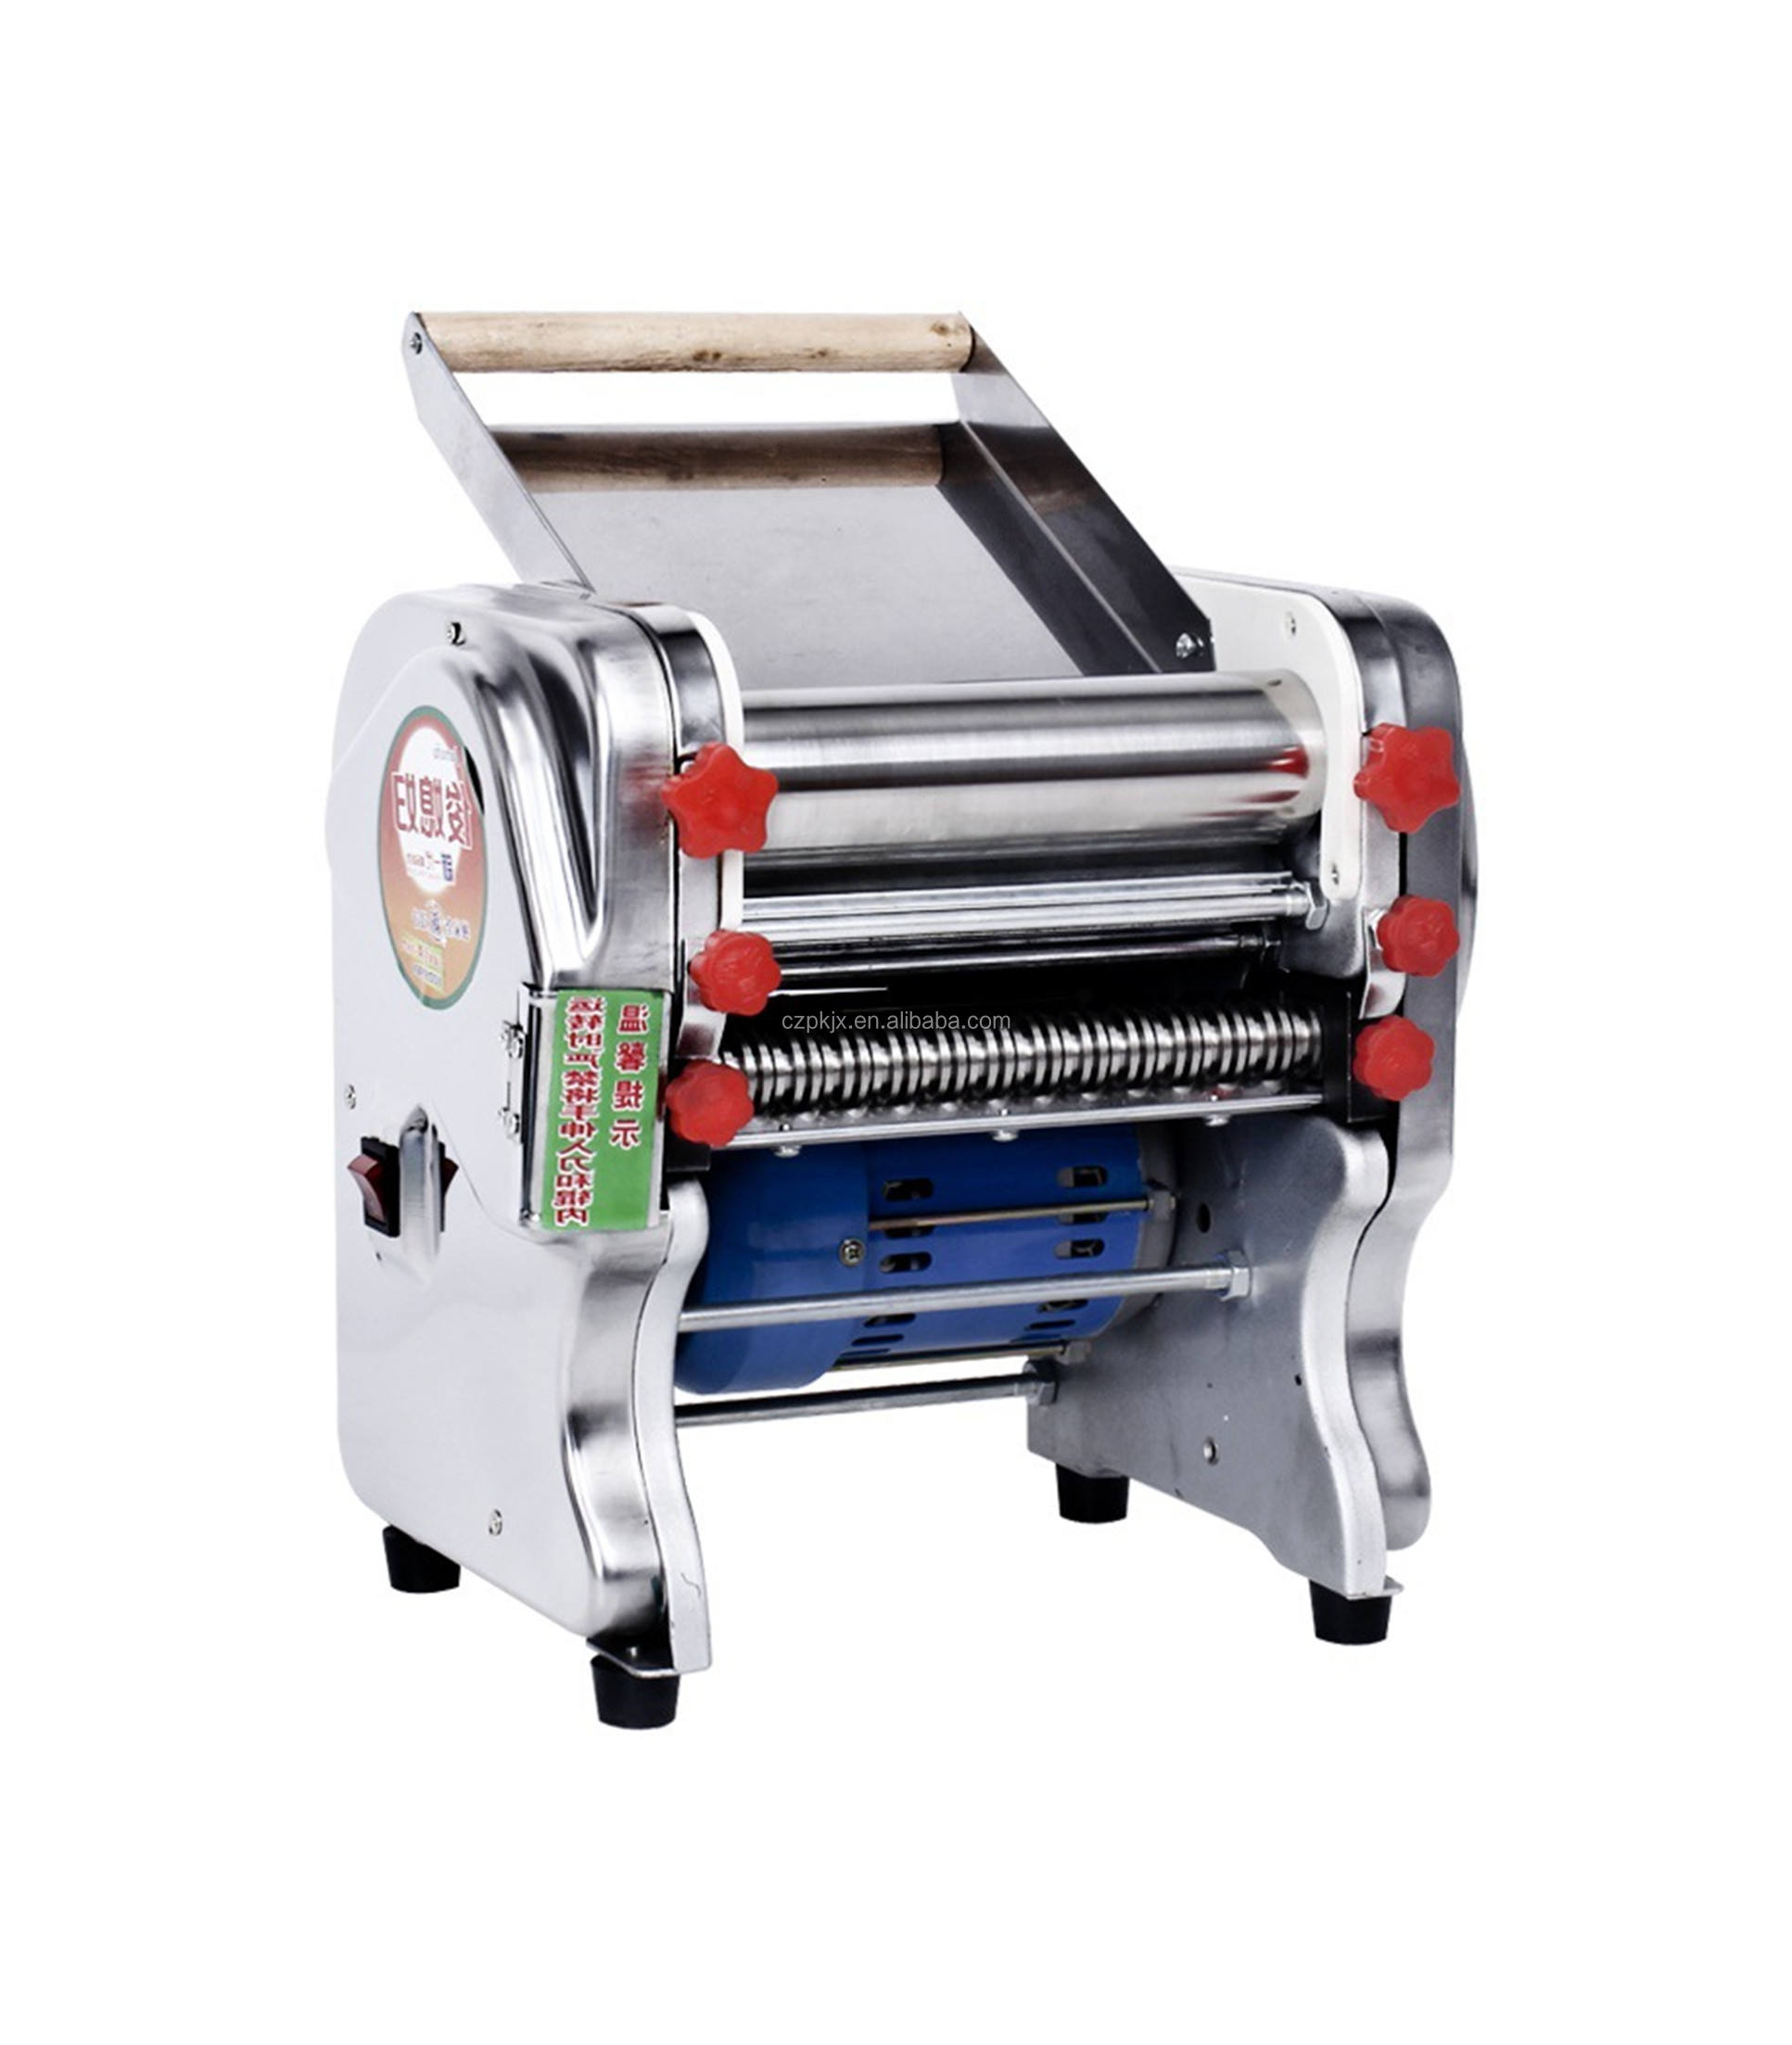 Pasta <span class=keywords><strong>Noodle</strong></span> <span class=keywords><strong>Maker</strong></span>, Pasta Making Machine Met 160 Mm Deeg Roller Pasta <span class=keywords><strong>Maker</strong></span> Roller Machine